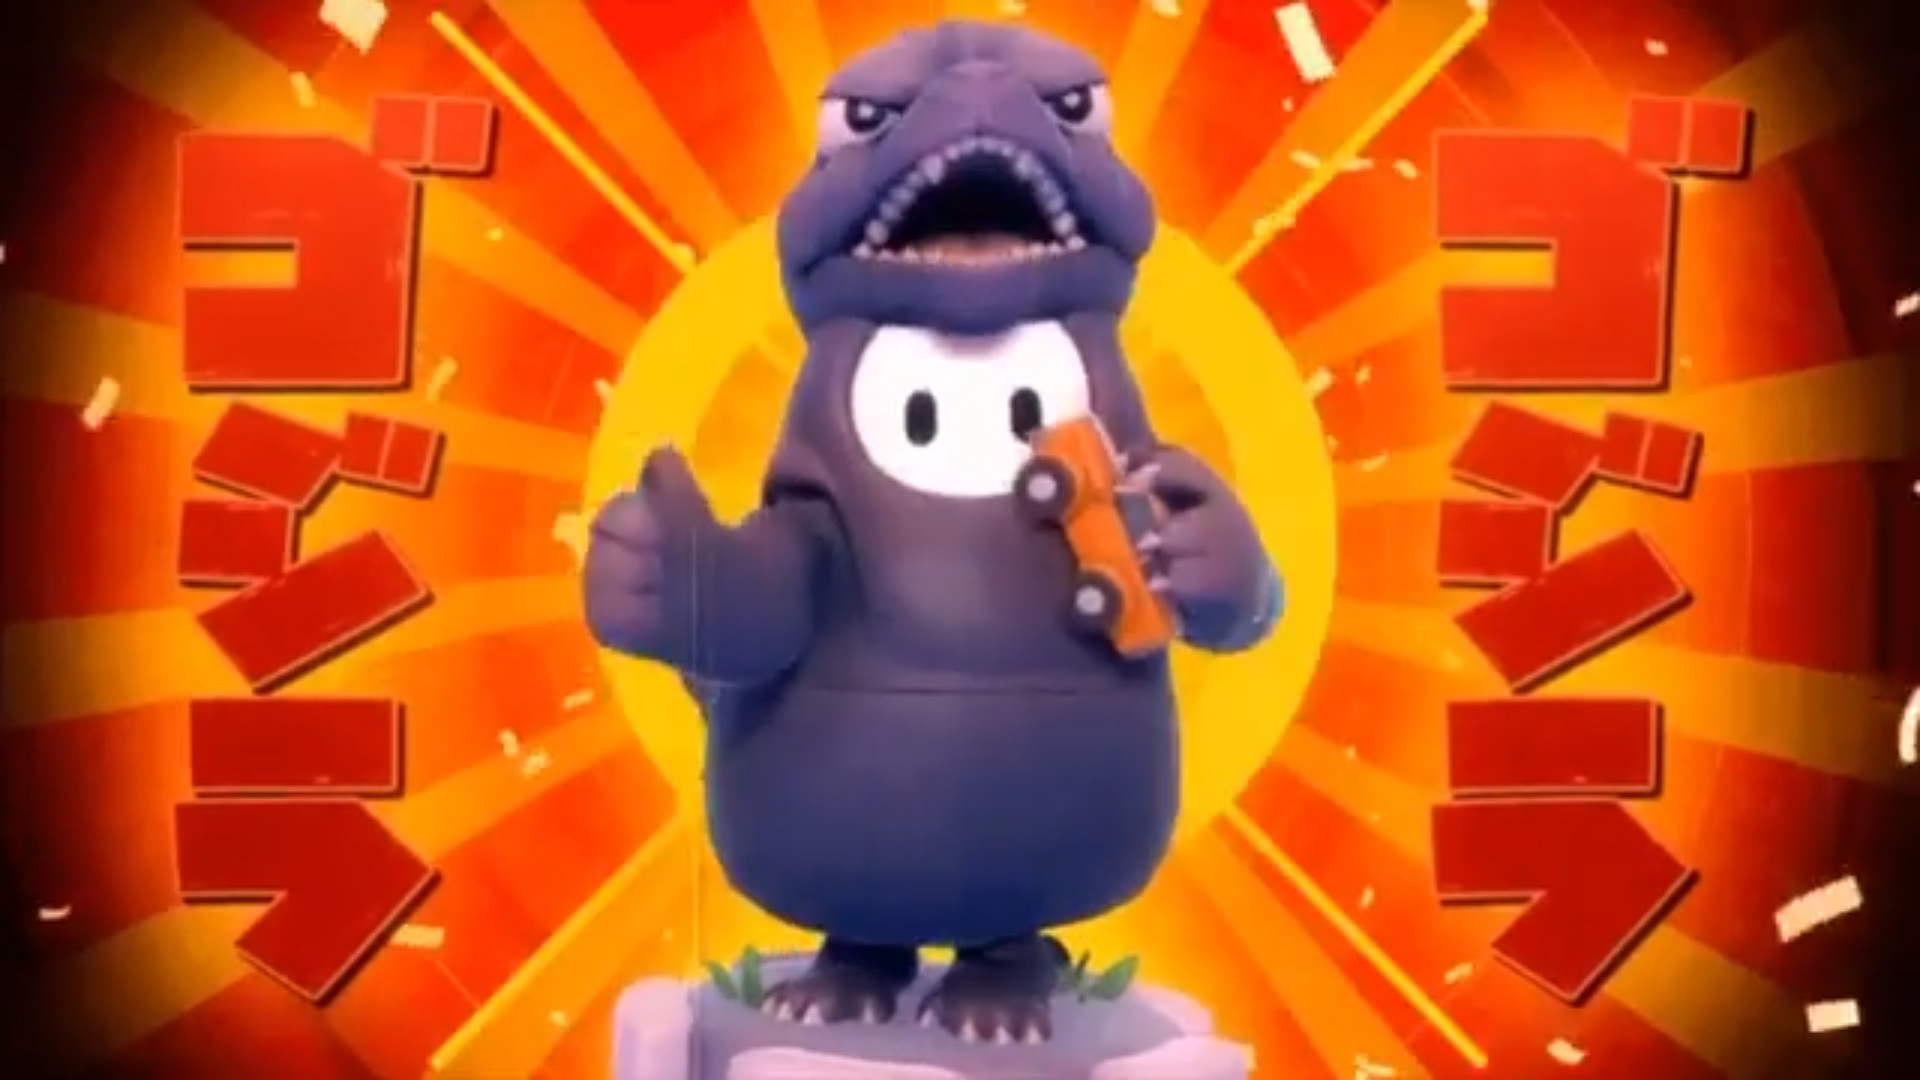 Hold onto your Fall Guys crowns for another week so you can get this sweet Godzilla costume